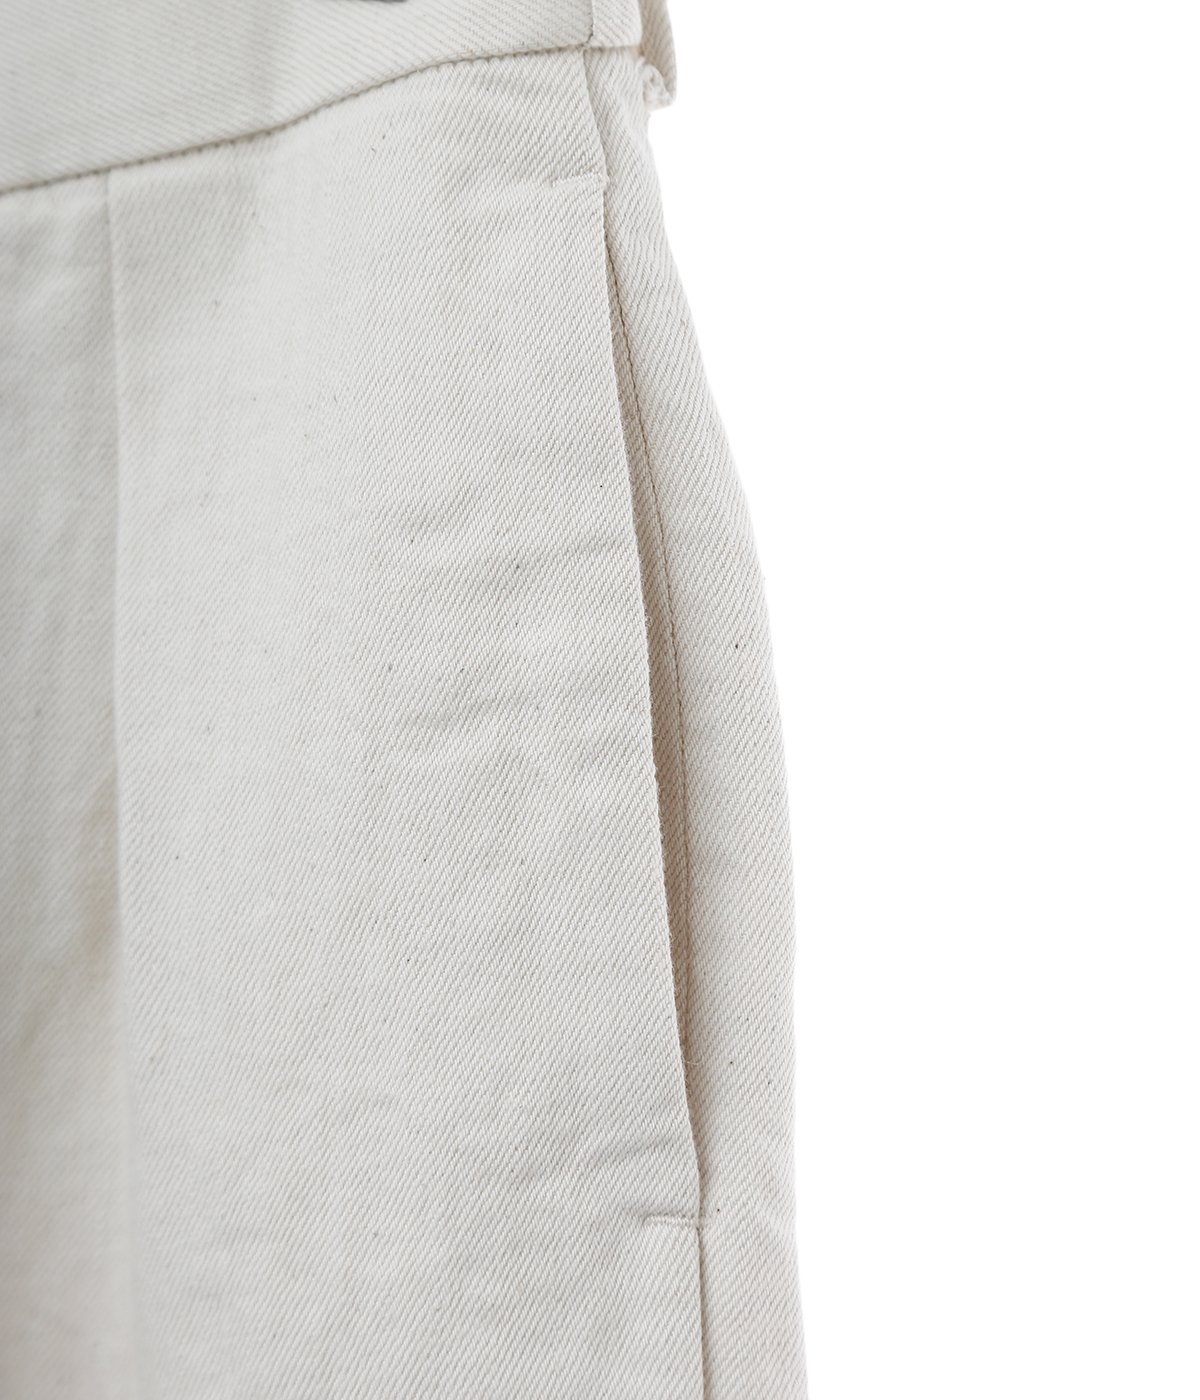 DOUBLE PLEATED TROUSERS - HEMP×ORGANIC COTTON DRILL -